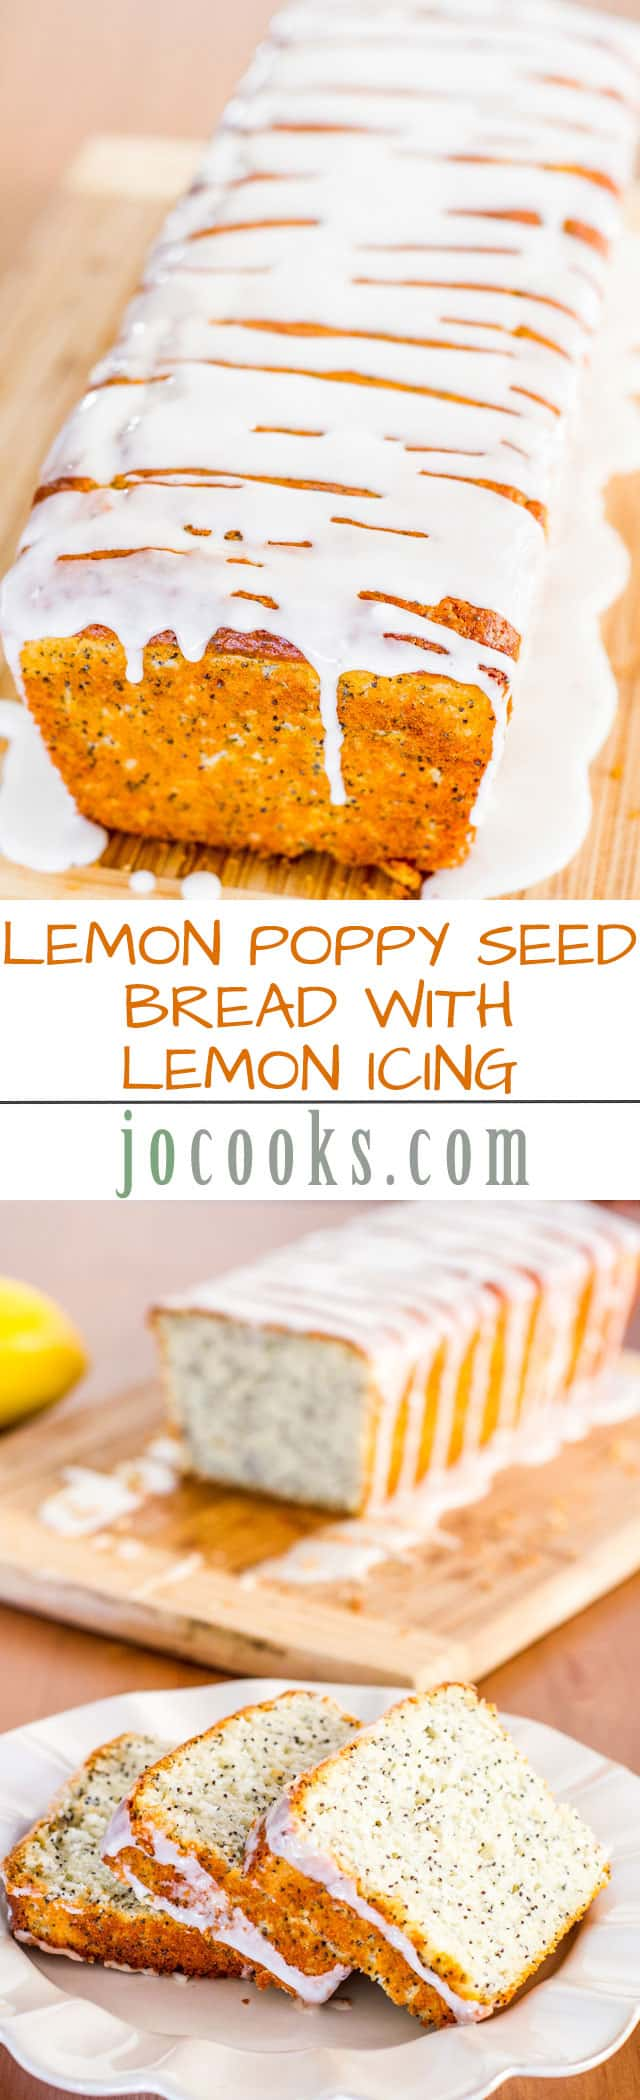 This delicious lemon poppy seed bread with lemon icing is so moist and simple to make, it simply takes you minutes to put together and in the oven it goes.